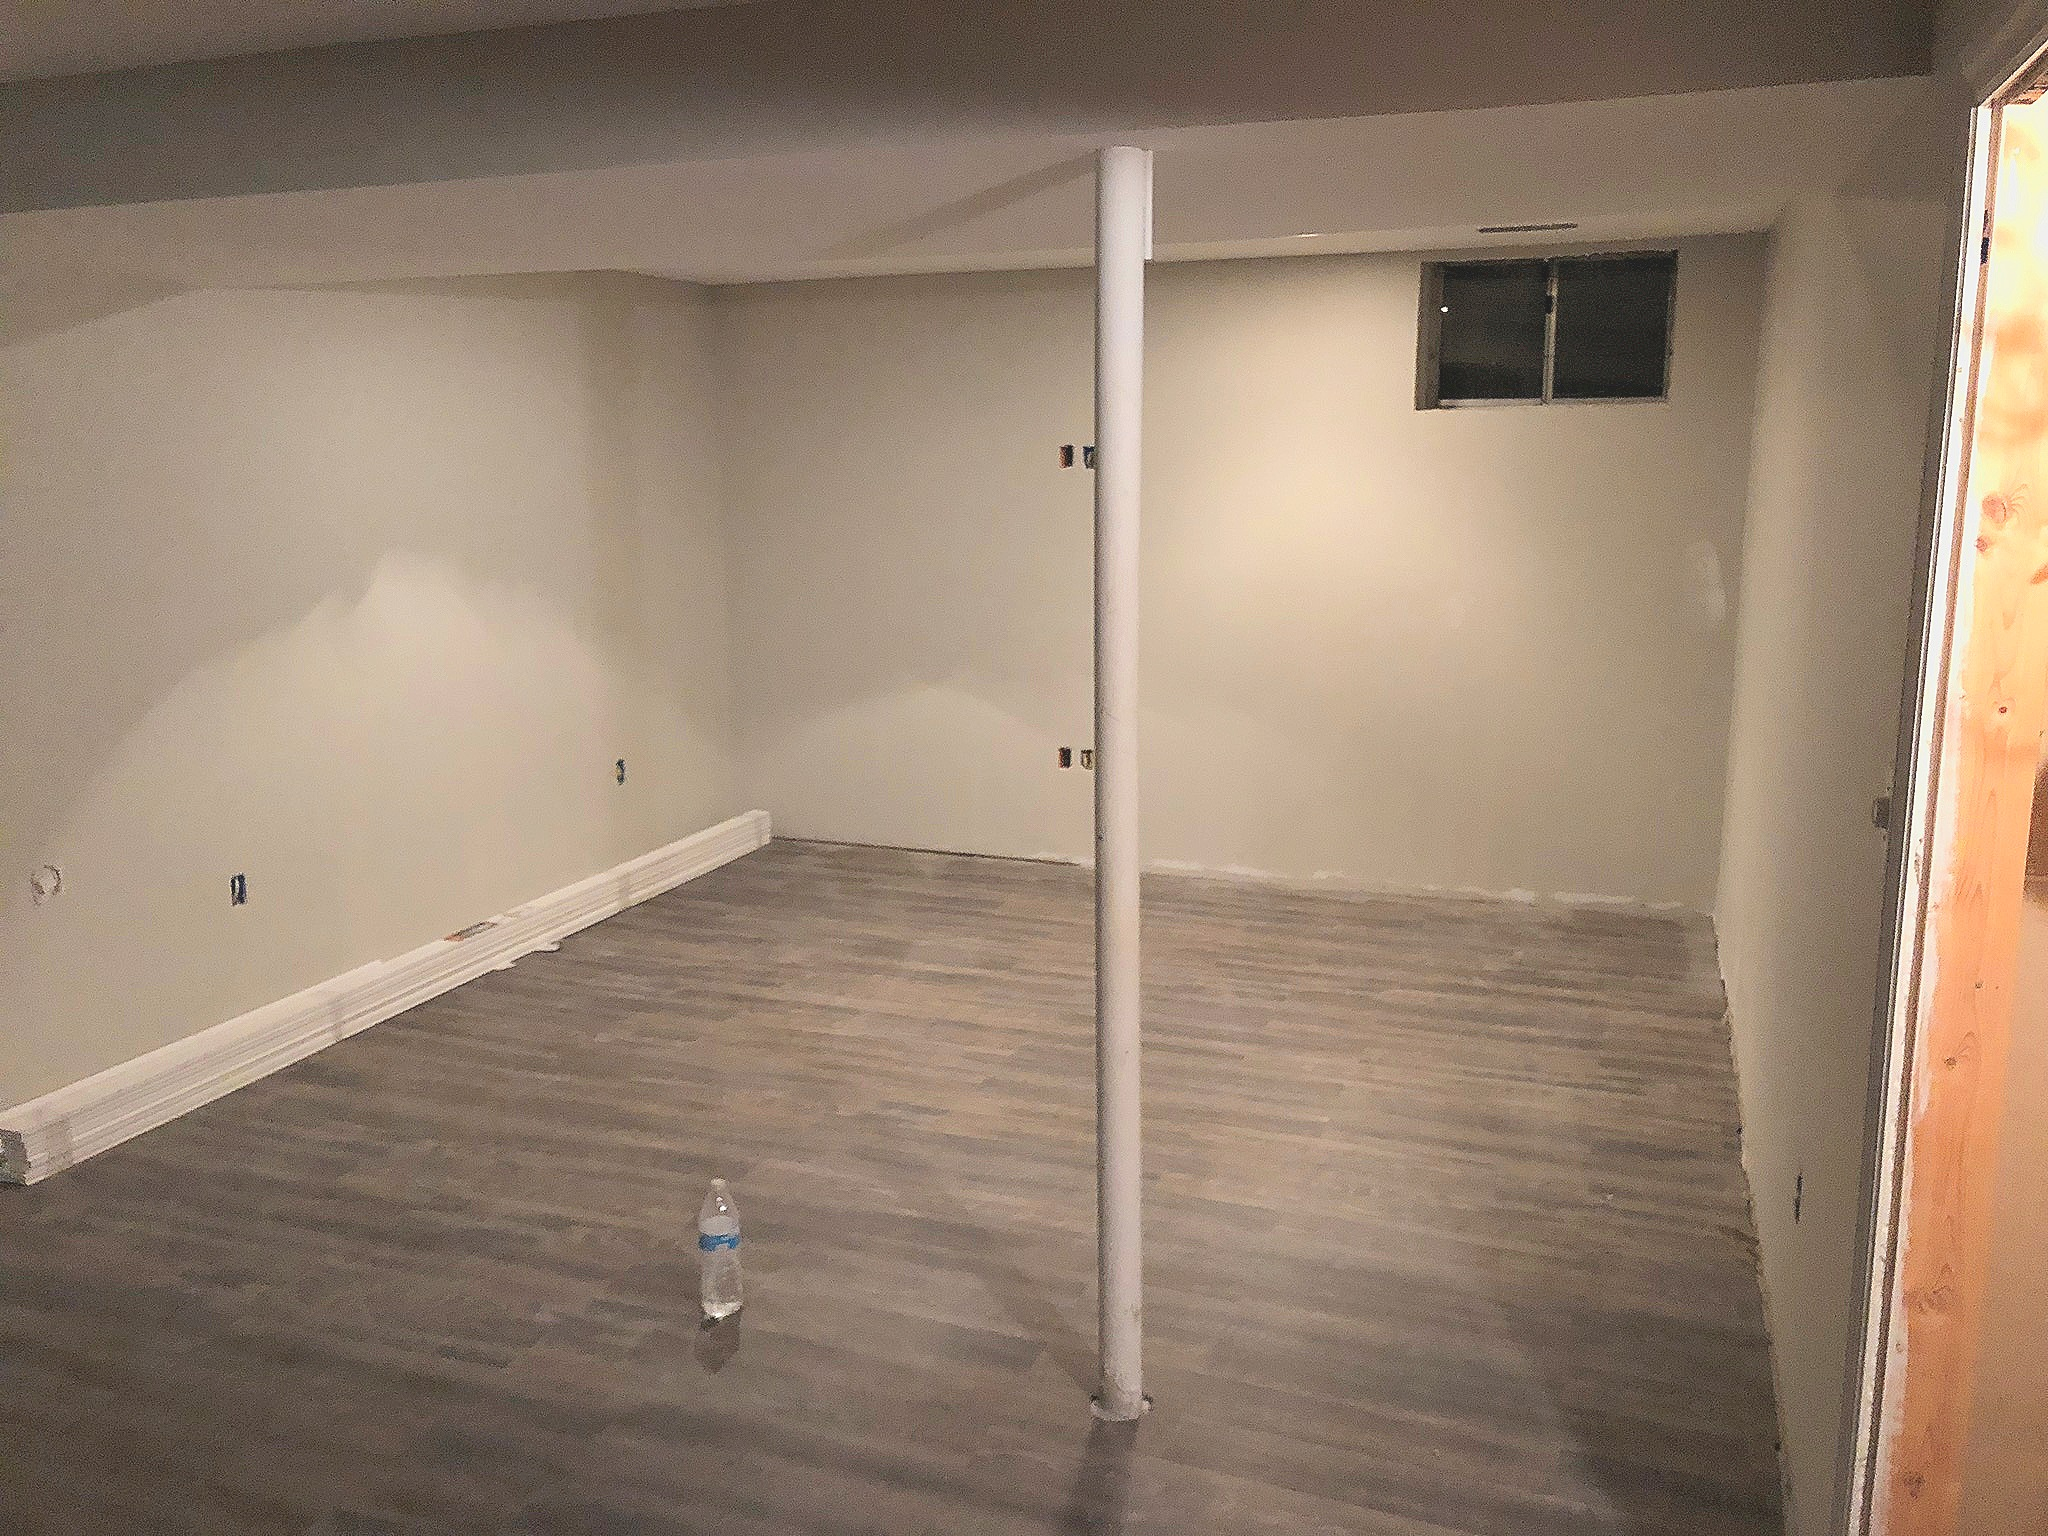 I kind of feel like this is starting to look like a grown up space!